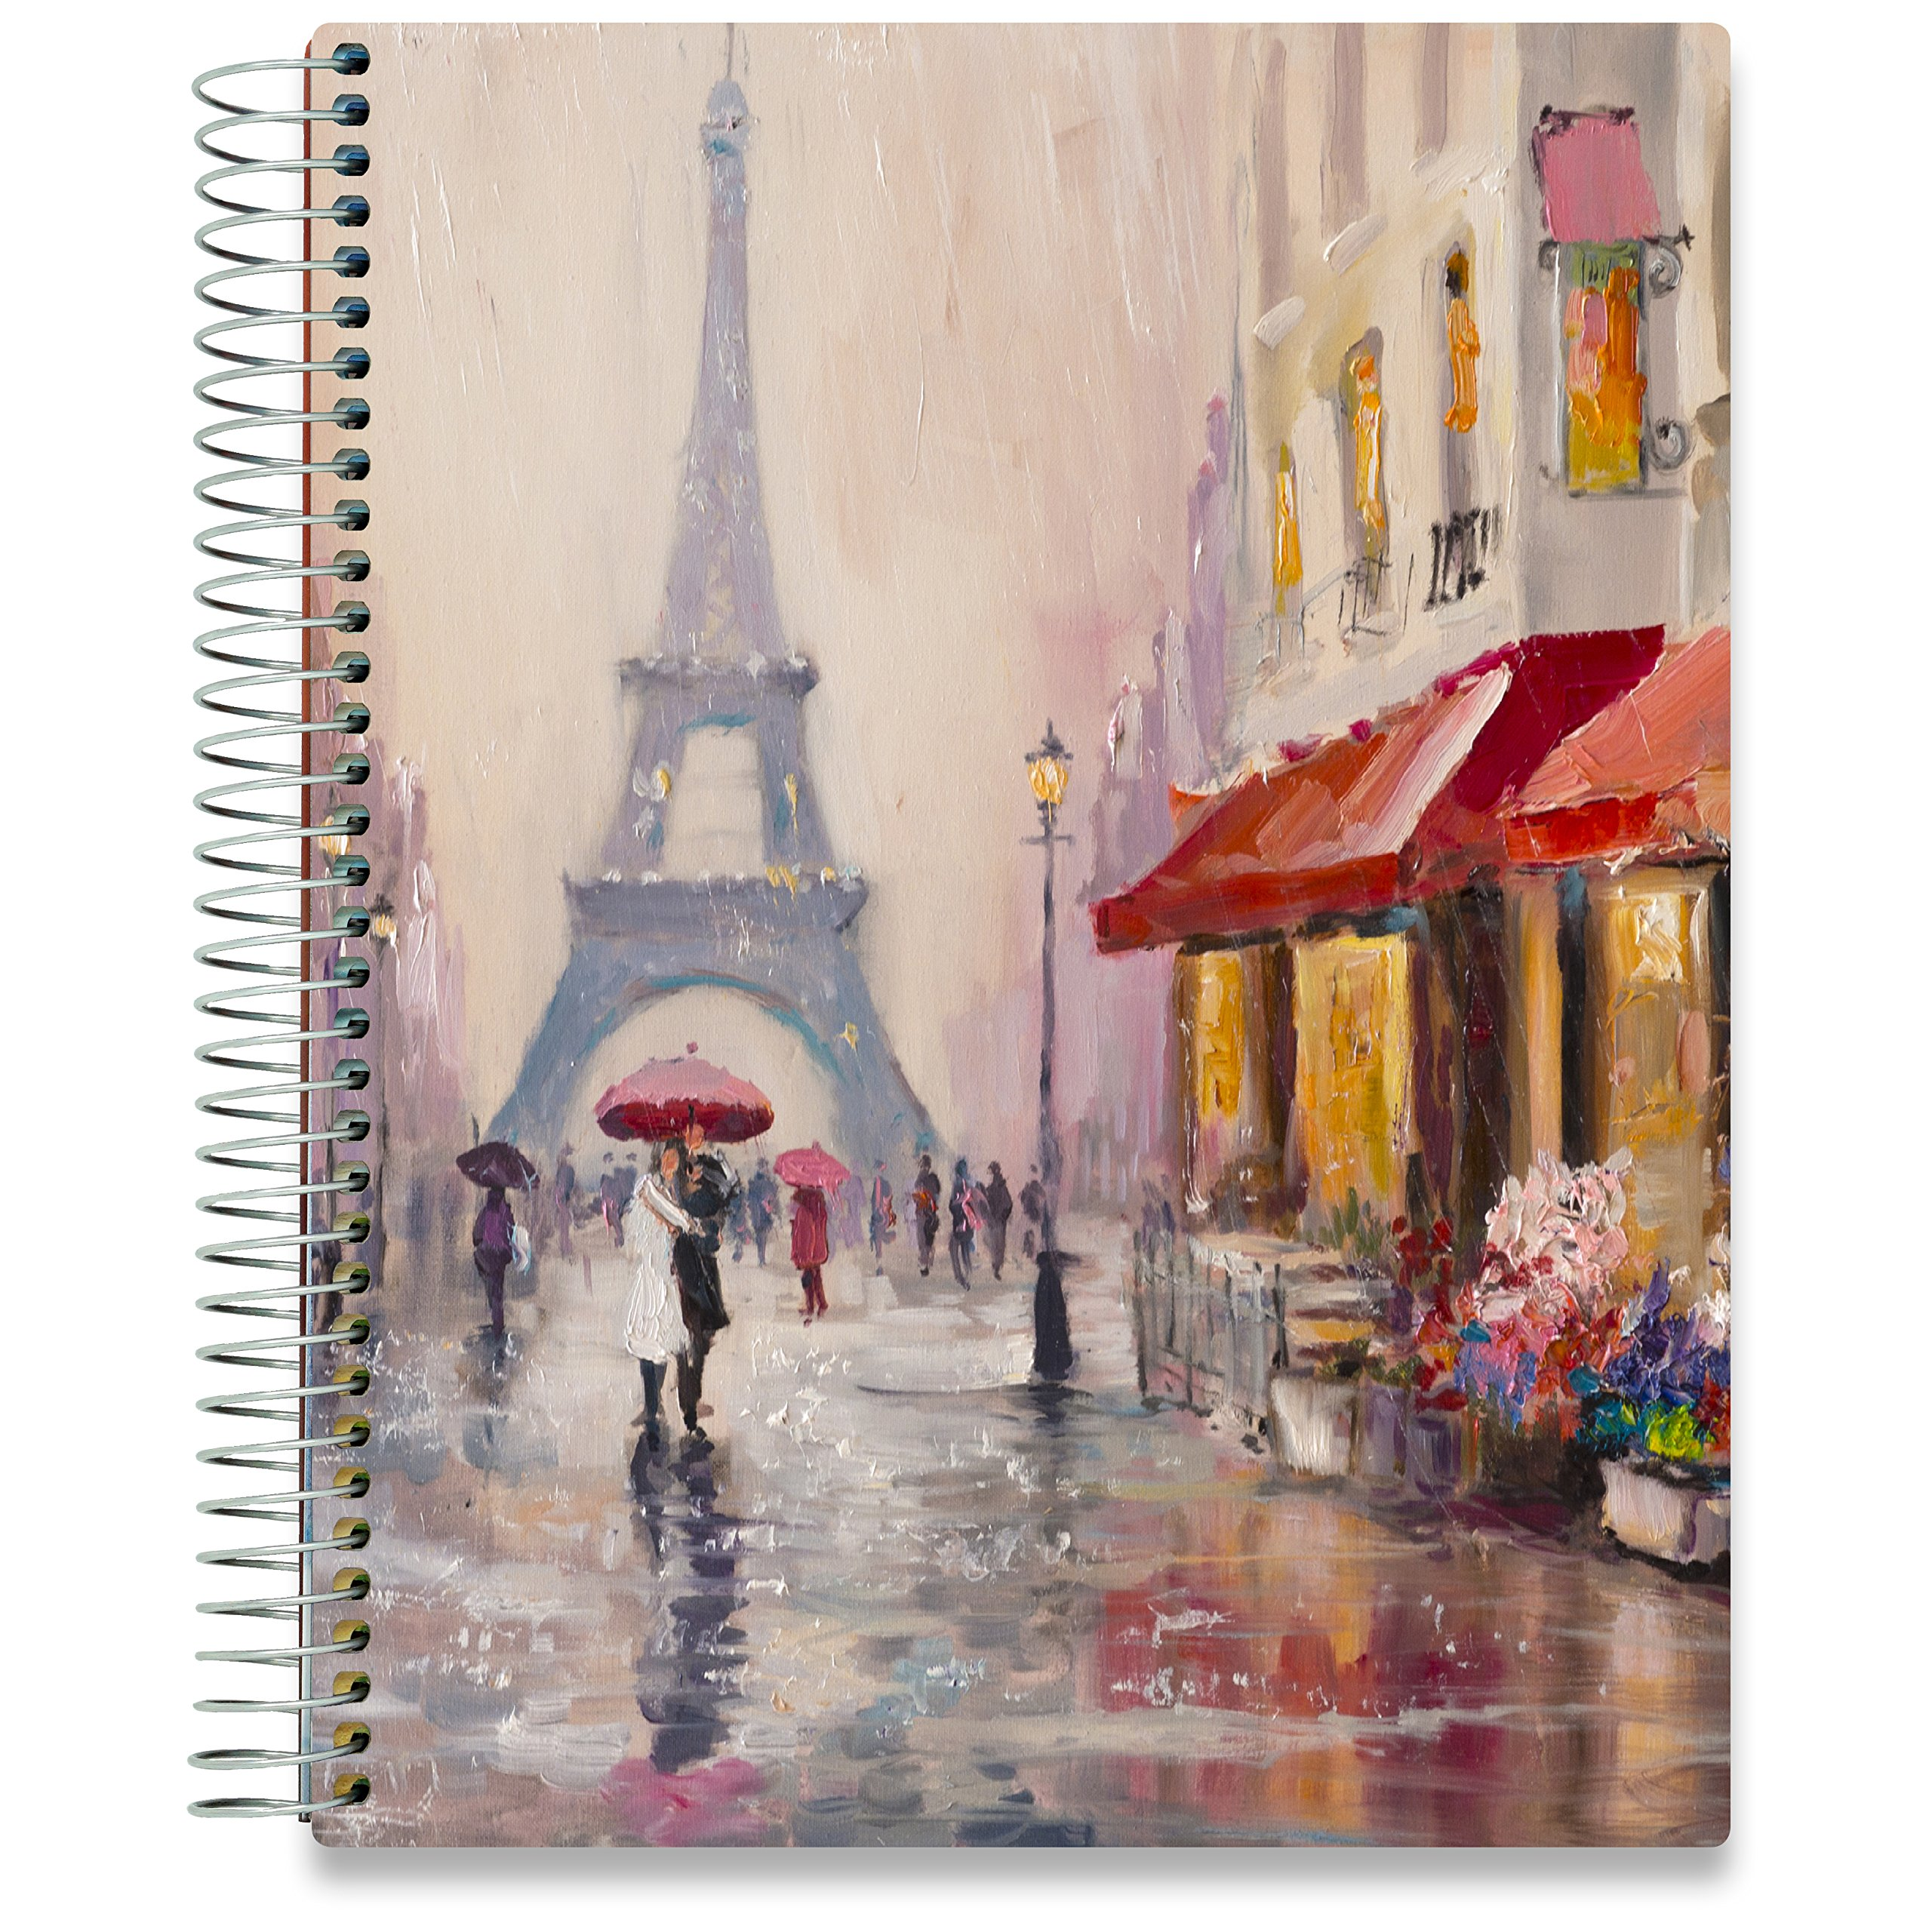 2020 Planner - Dated October 2019-2020 - 8.5 x 11 Paris Hardcover - Daily Weekly Monthly - 15 Months - Dated Oct November December 2019 Plus 2020 Calendar Year - by Tools4Wisdom Planners by Tools4Wisdom